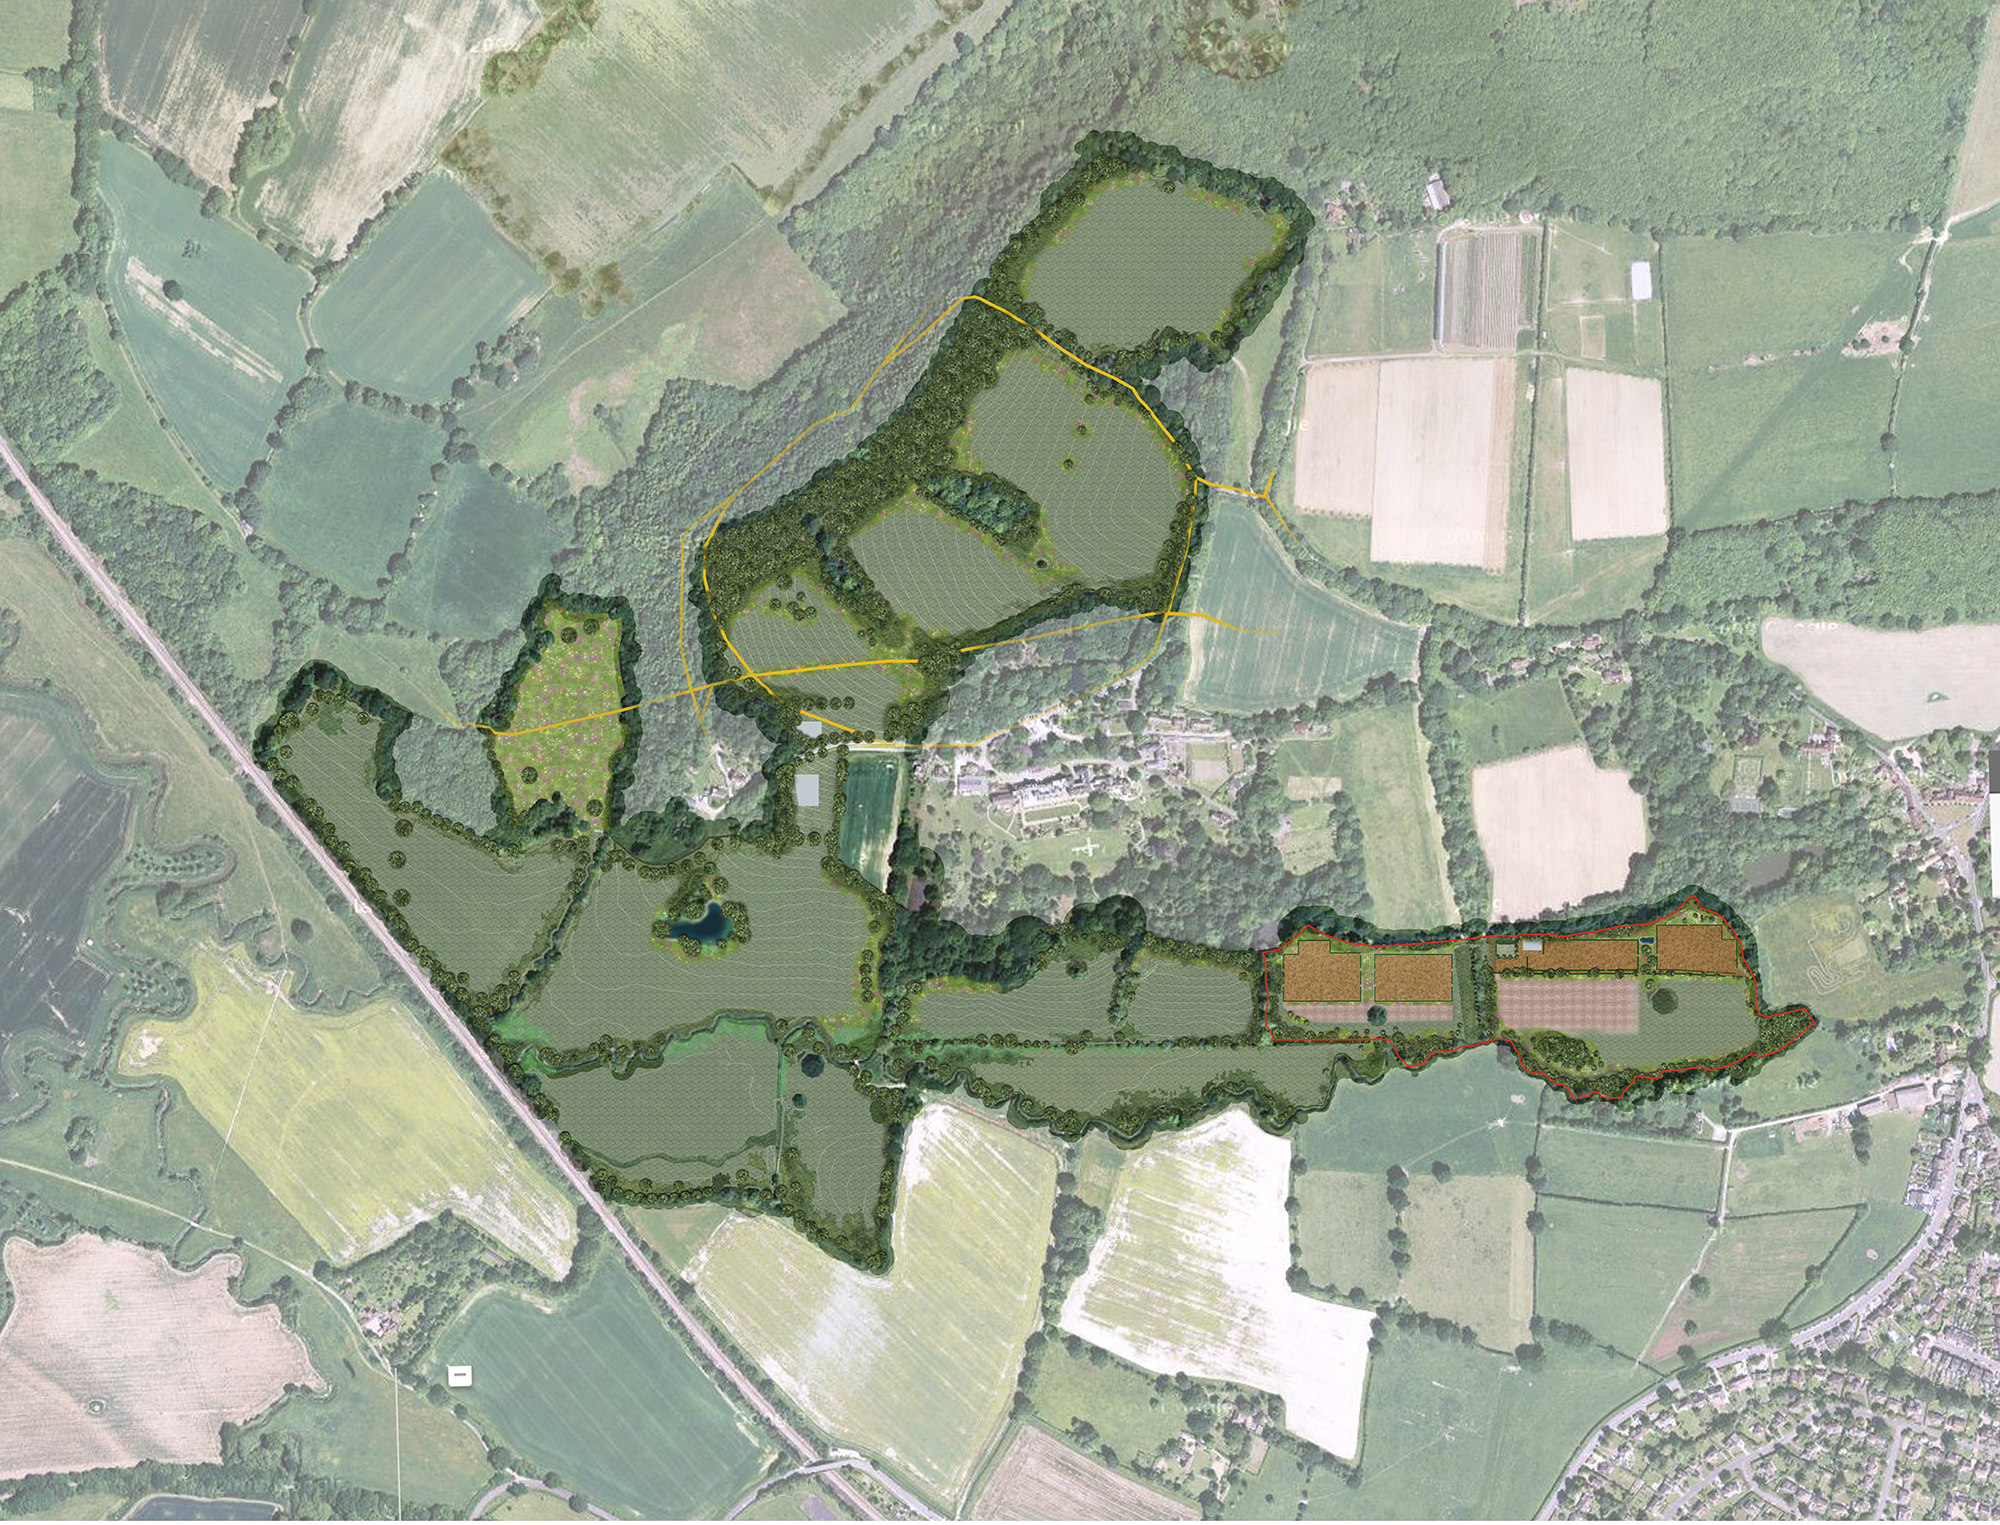 LLD415-01_Burrswood.OutlineMasterplanStrategy_Rev00_27.01.12-Outline Landuse Masterplan Strategy.jpg